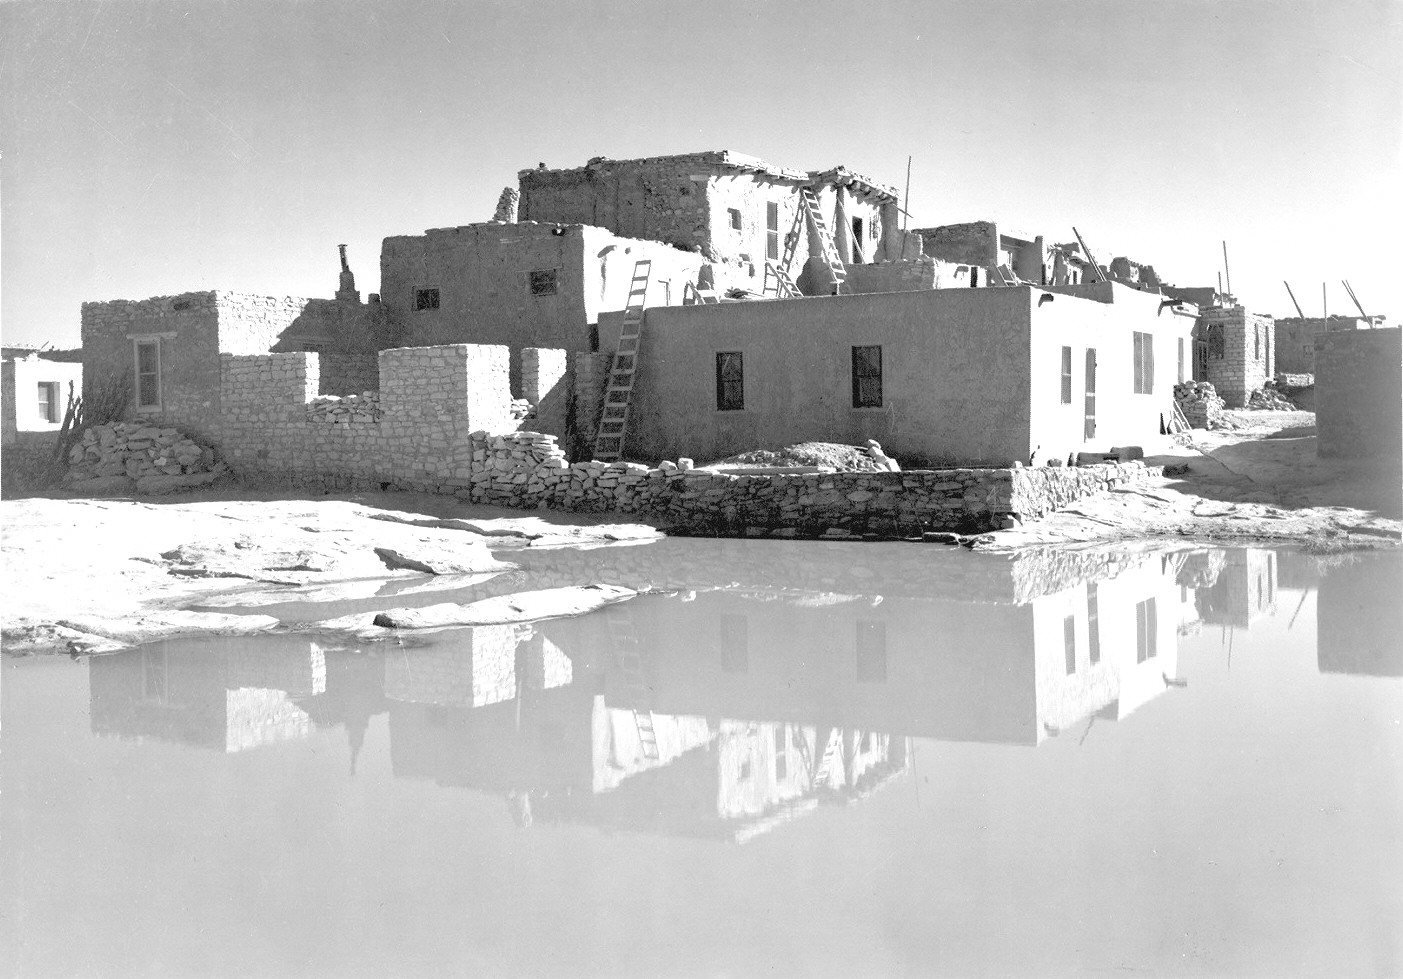 Ansel adams photographs for Ansel adams mural project